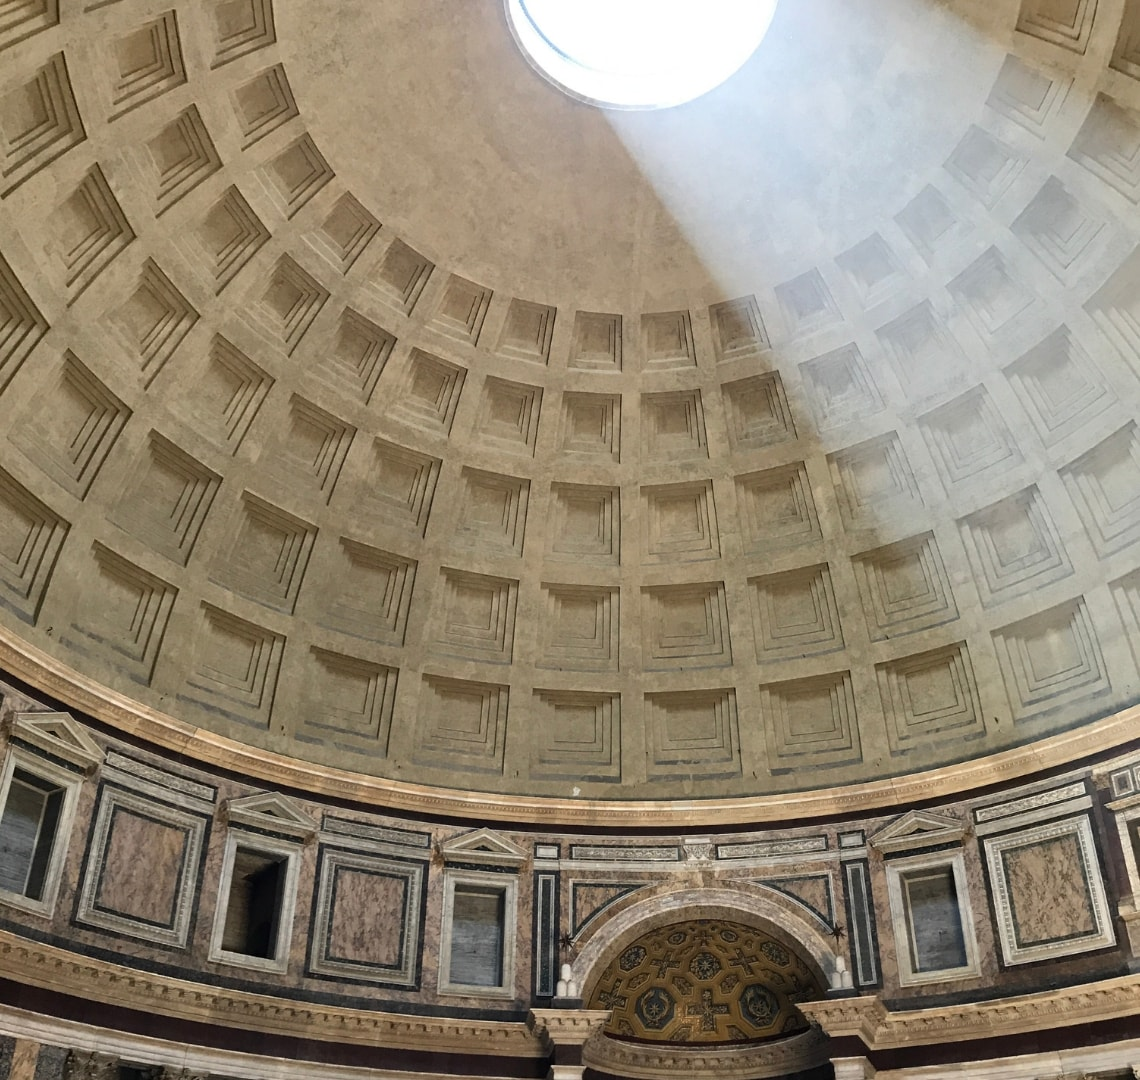 Rome - view to the skylight in the roof of the Pantheon